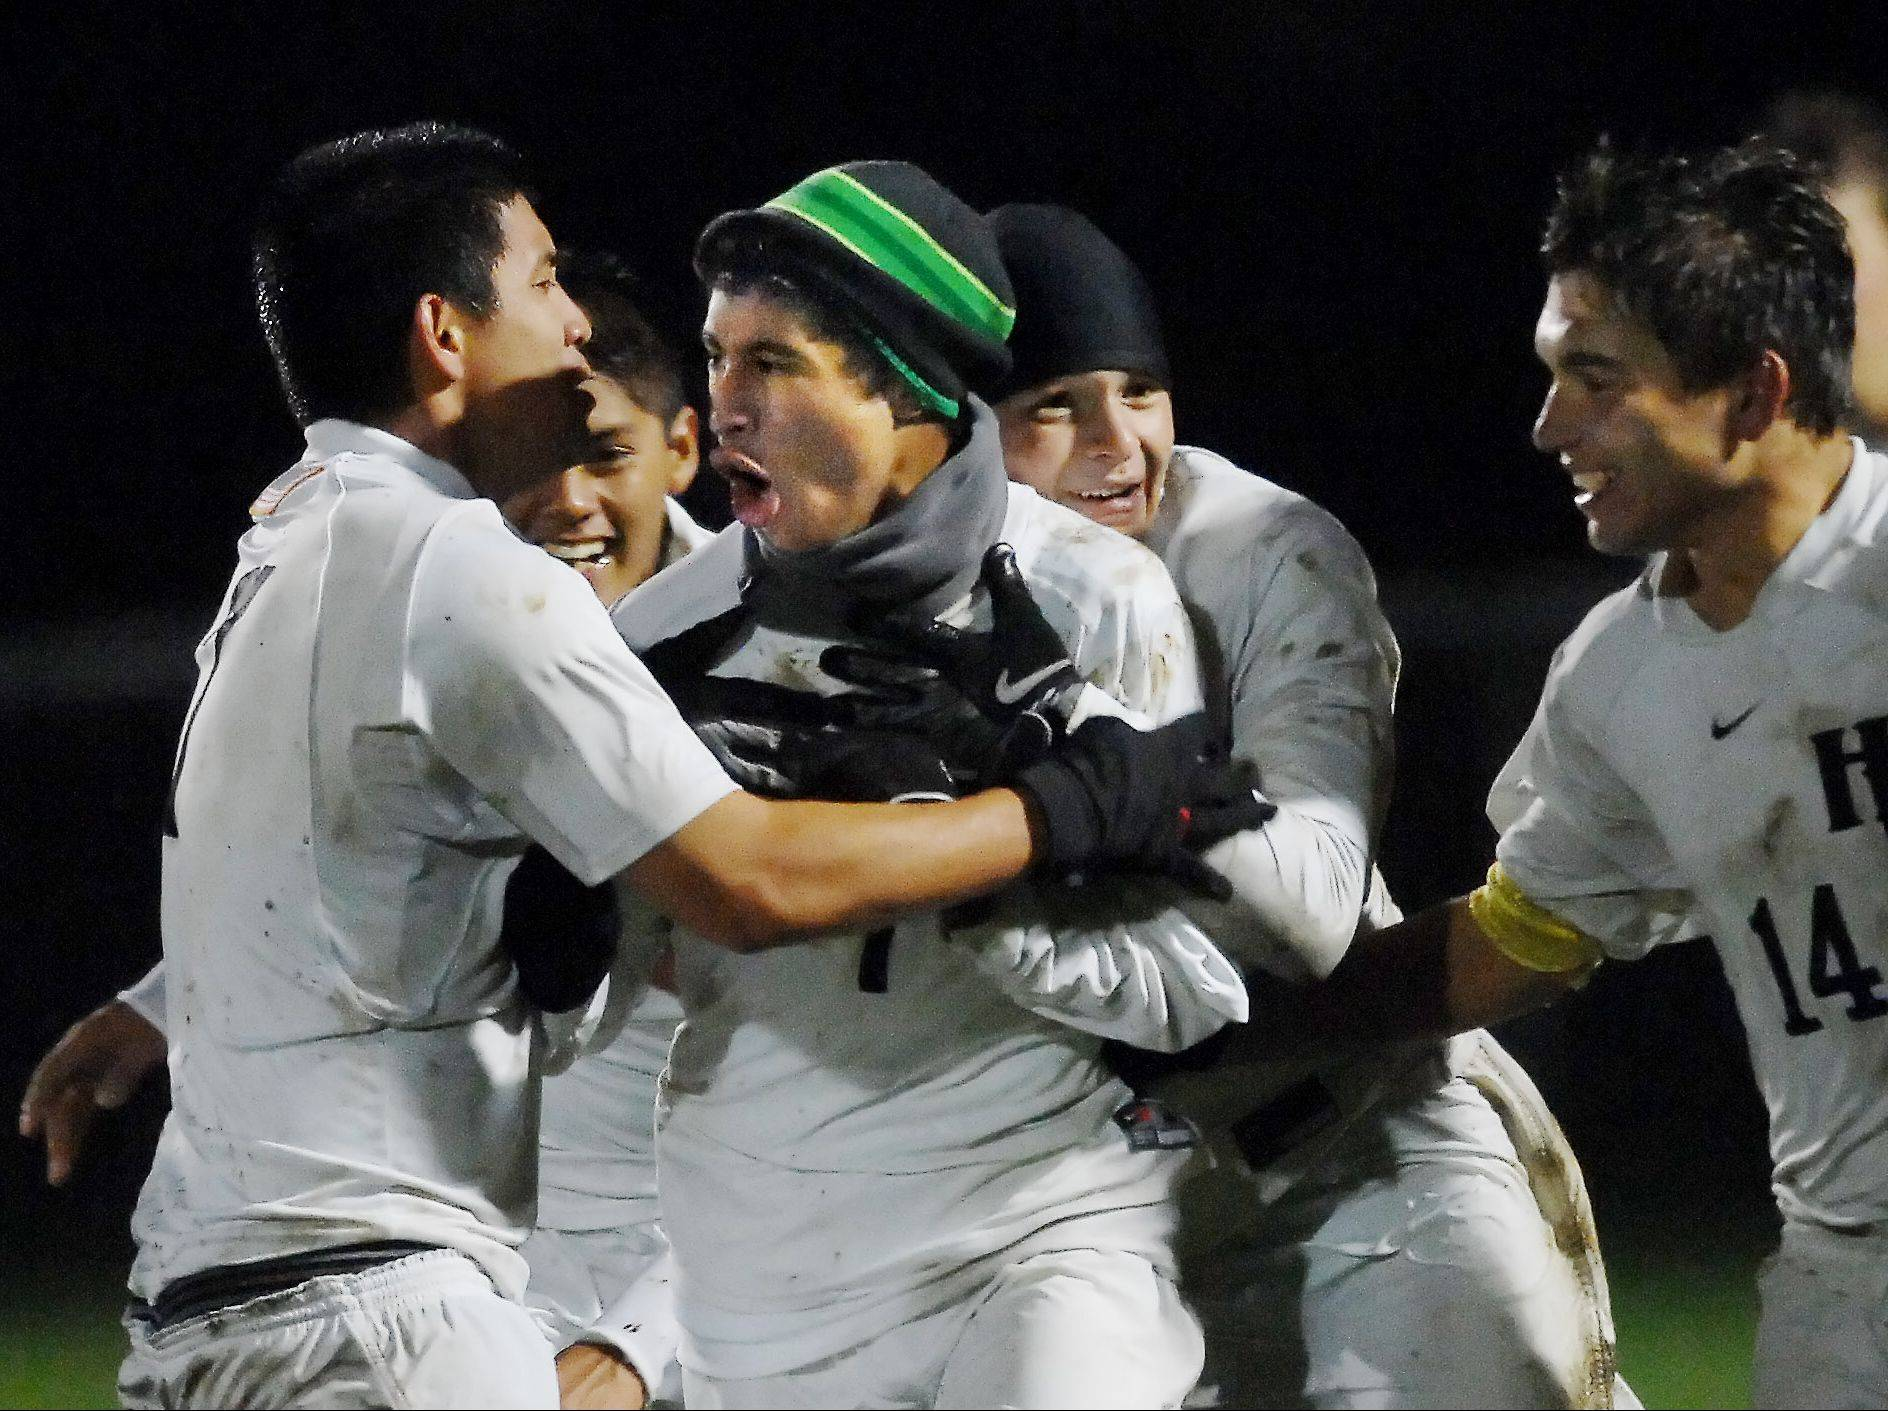 Jacobs' Eric Soto is hugged by teammates after he scored a goal against Huntley last season. Soto is a senior and among the top returners for the Golden Eagles, who feature a roster with plenty of experience.